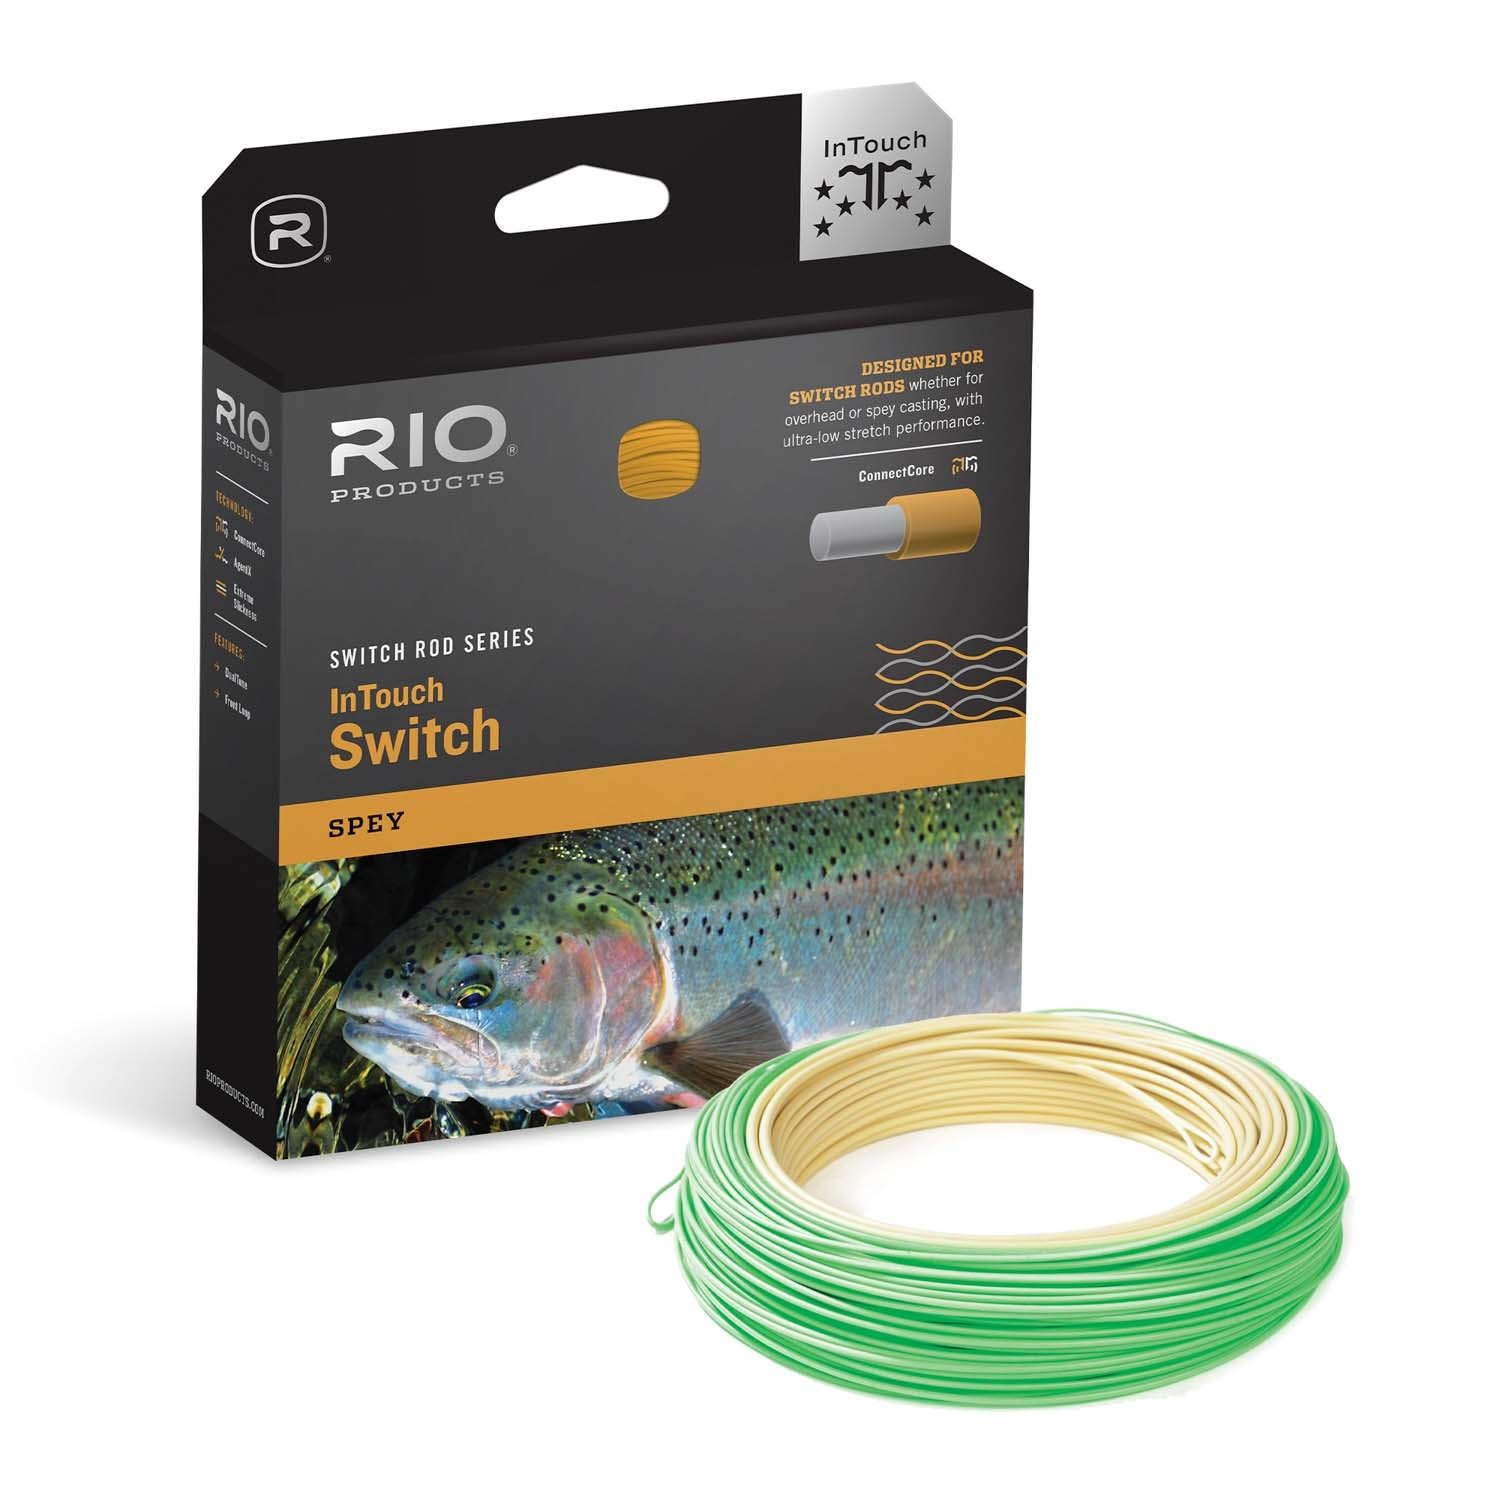 Rio InTouch Switch